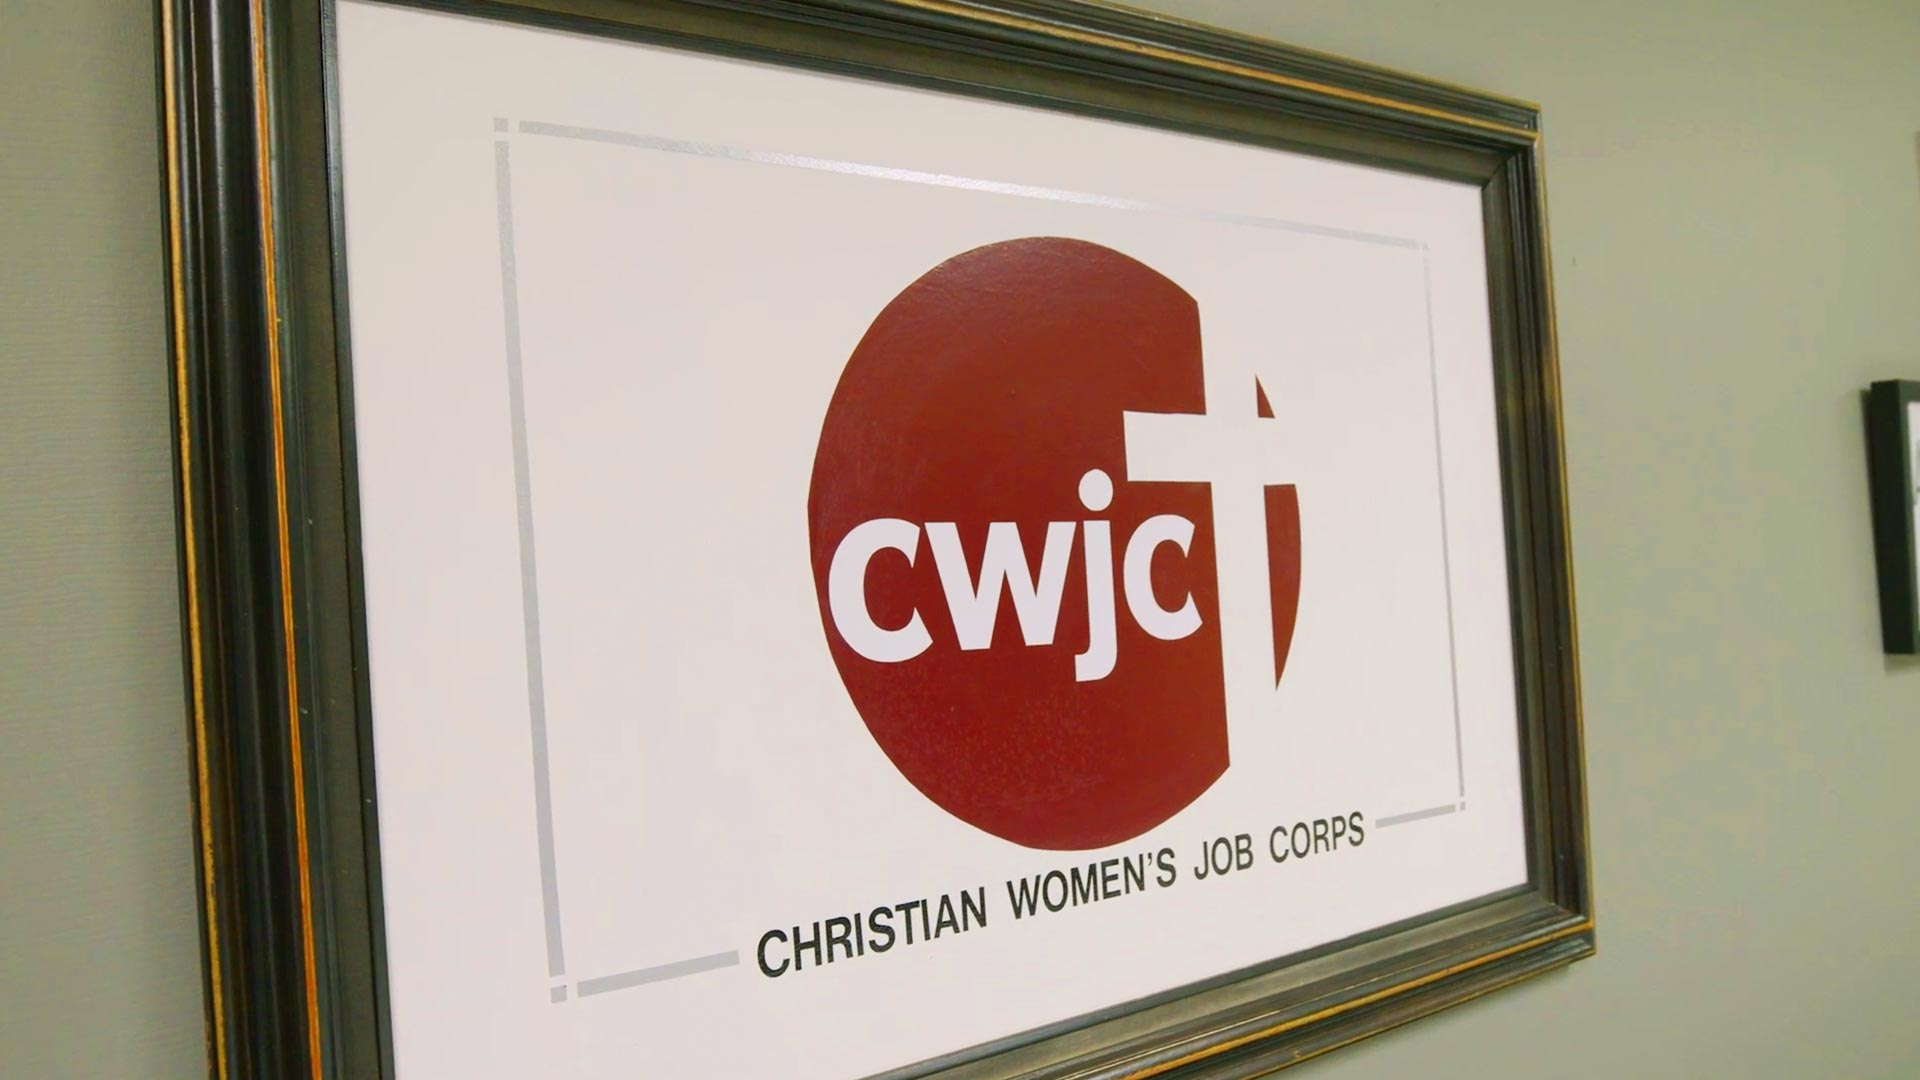 Video – Christian Women's Job Corps Promo